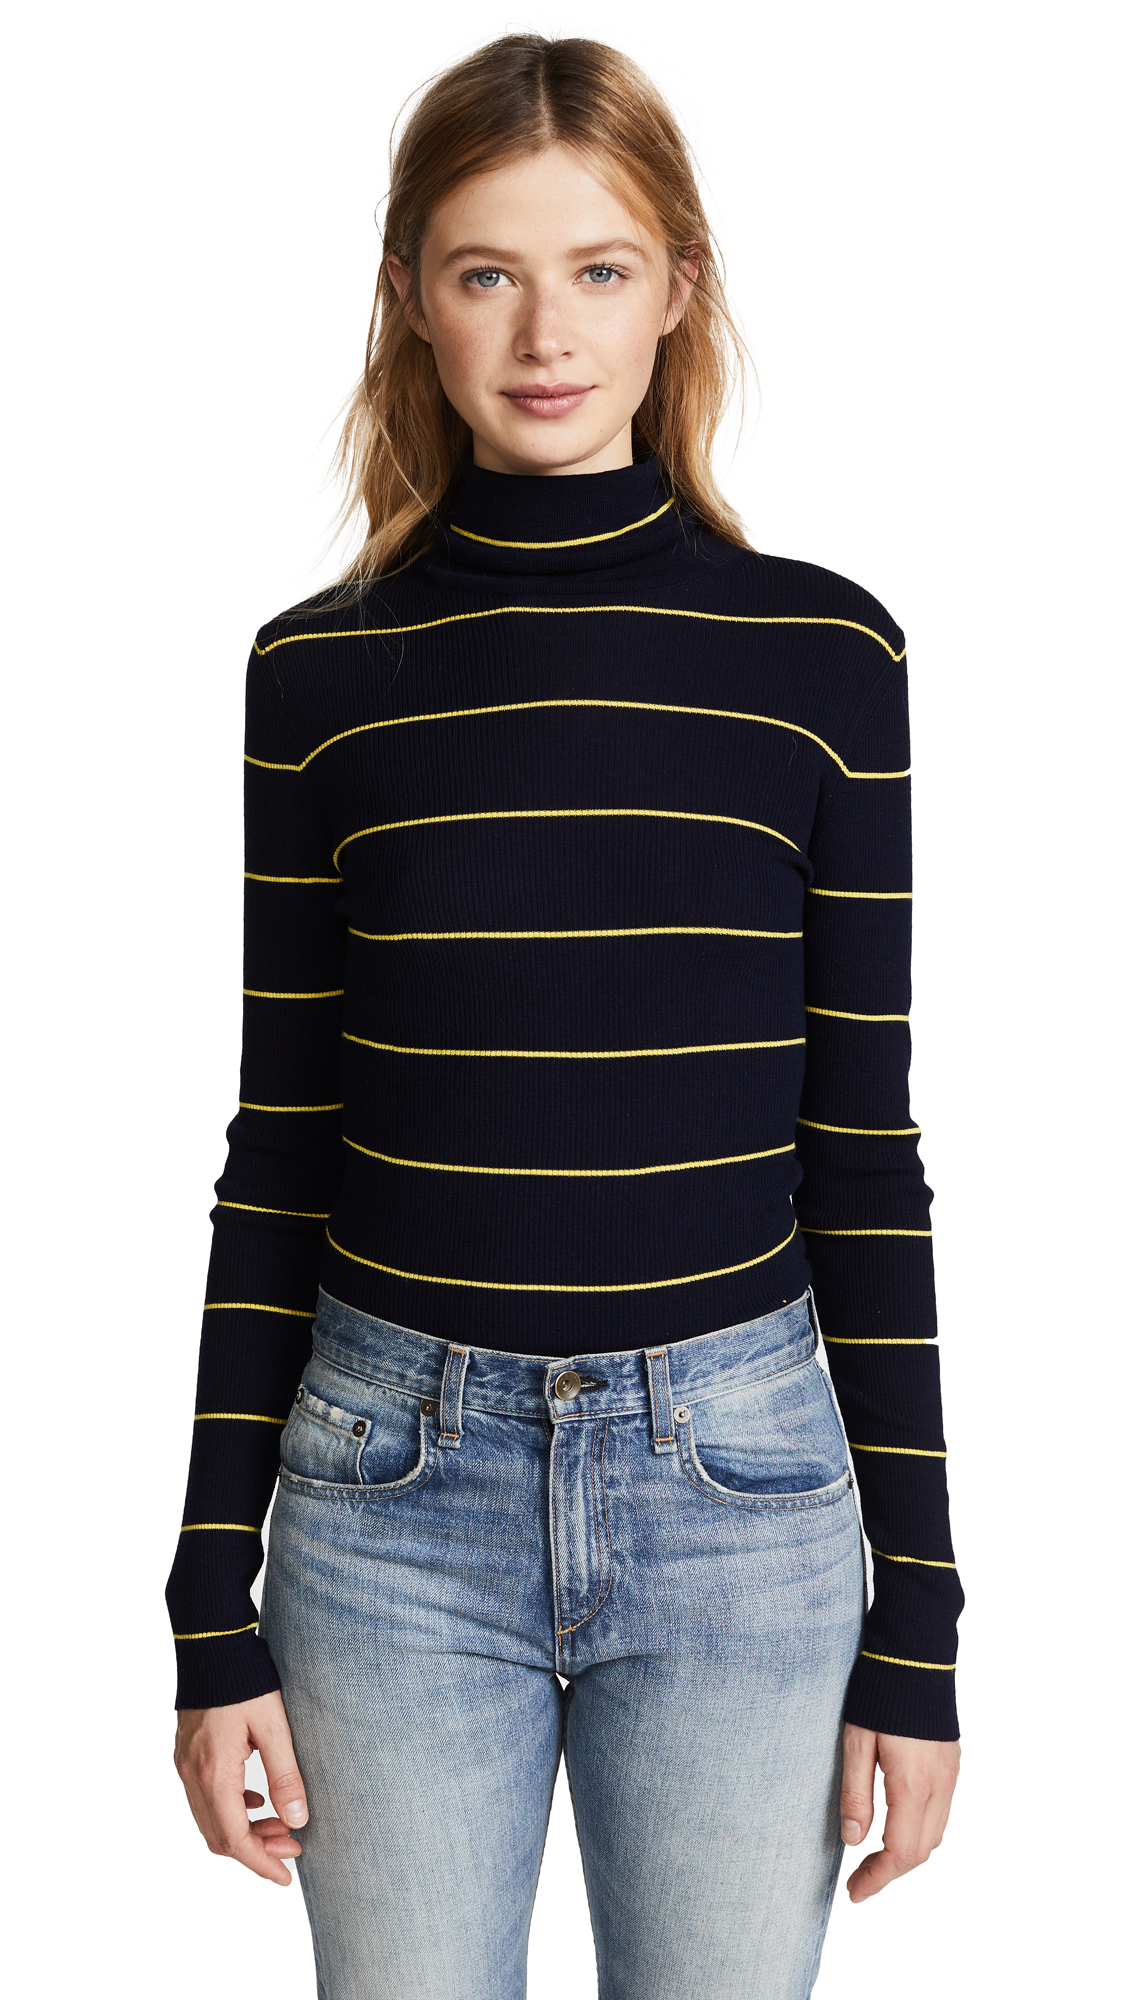 Theory Striped Long Sleeve Crop Turtleneck - Deep Navy/Bright Yellow